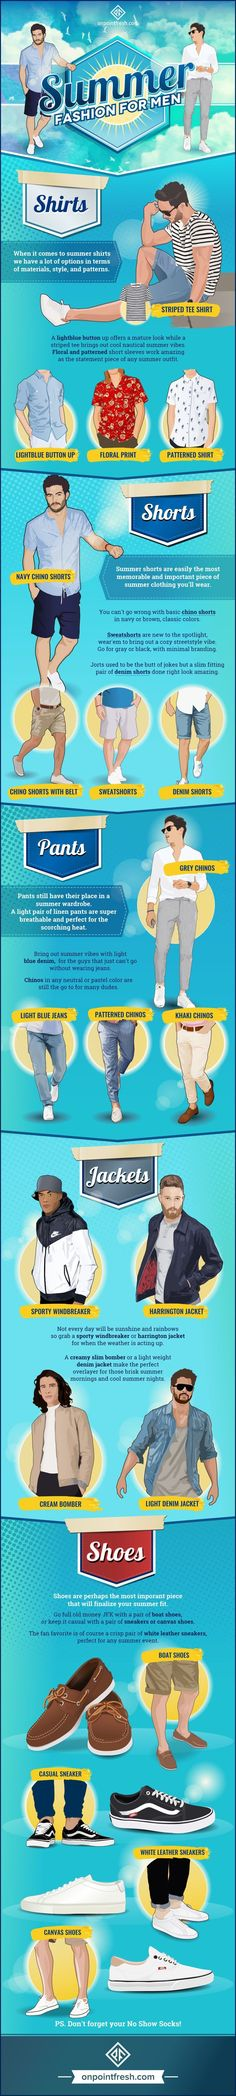 (adsbygoogle = window.adsbygoogle || []).push();   Idée et inspiration look d'été tendance 2017   Image   Description   Visual Guide To Men's Summer Fashion – hope this helps you find your summer style! #GuideToMensClothing